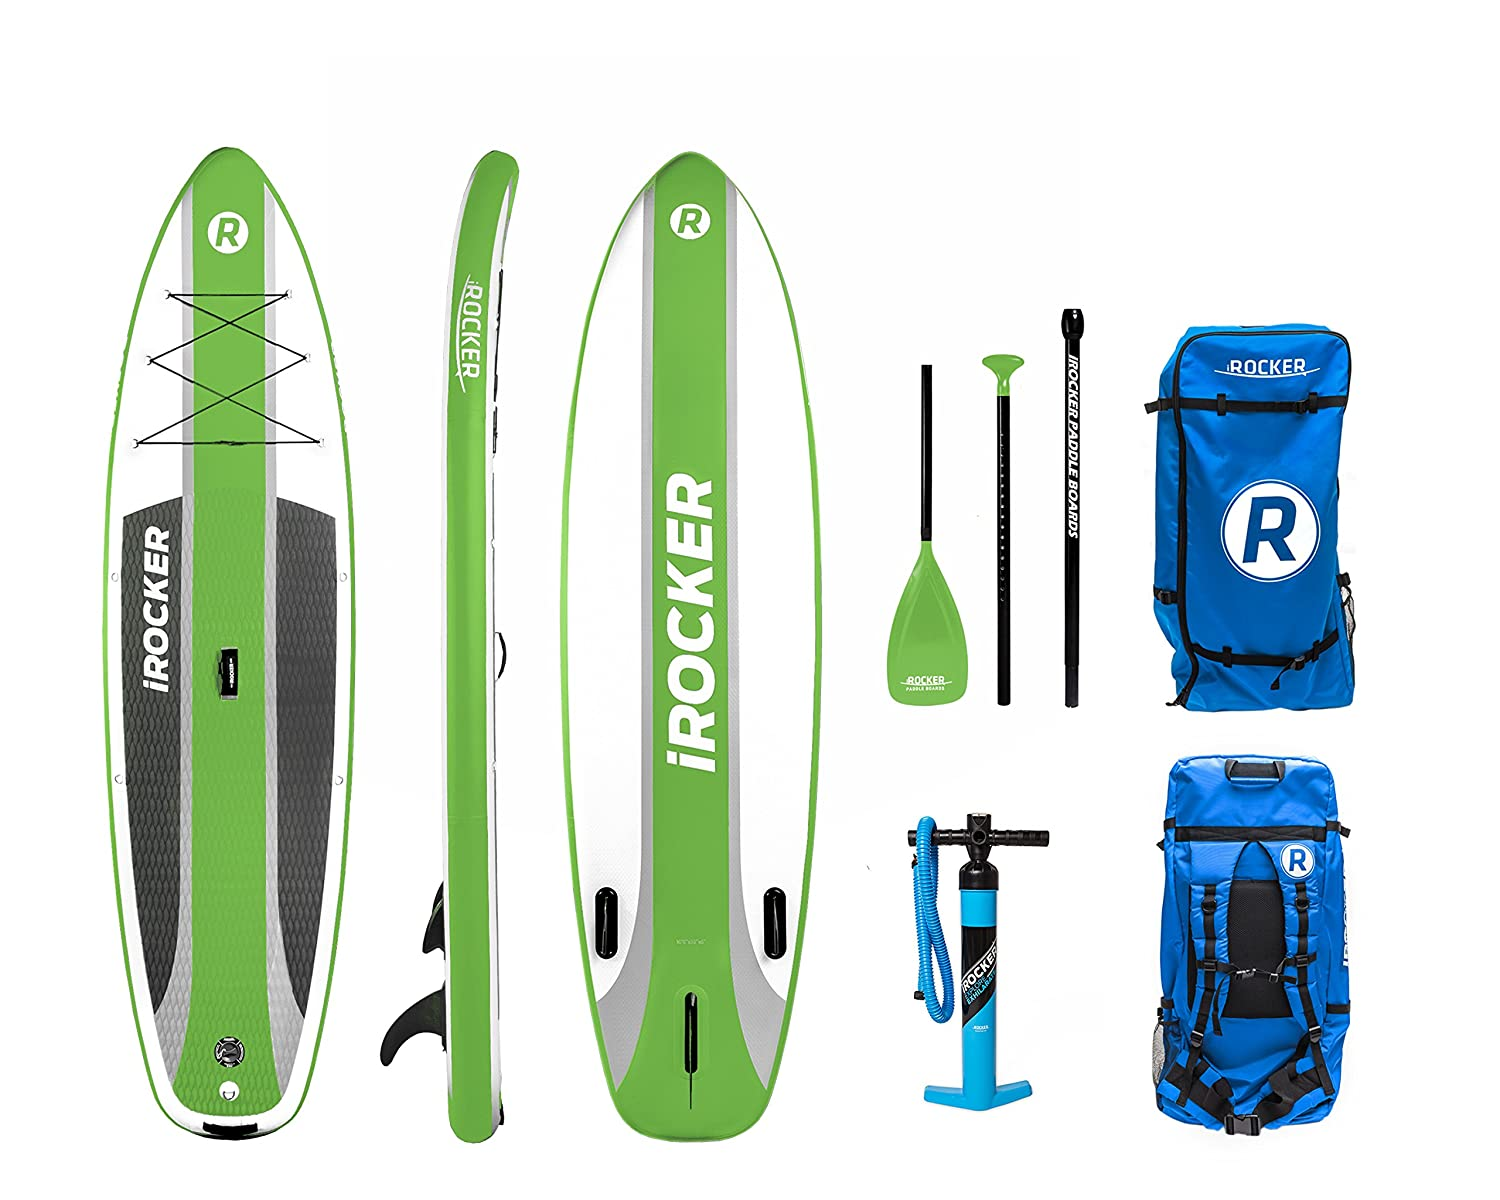 Paquete SUP de tabla de surf de remo hinchable iROCKER CRUISER, 106 largo, 33